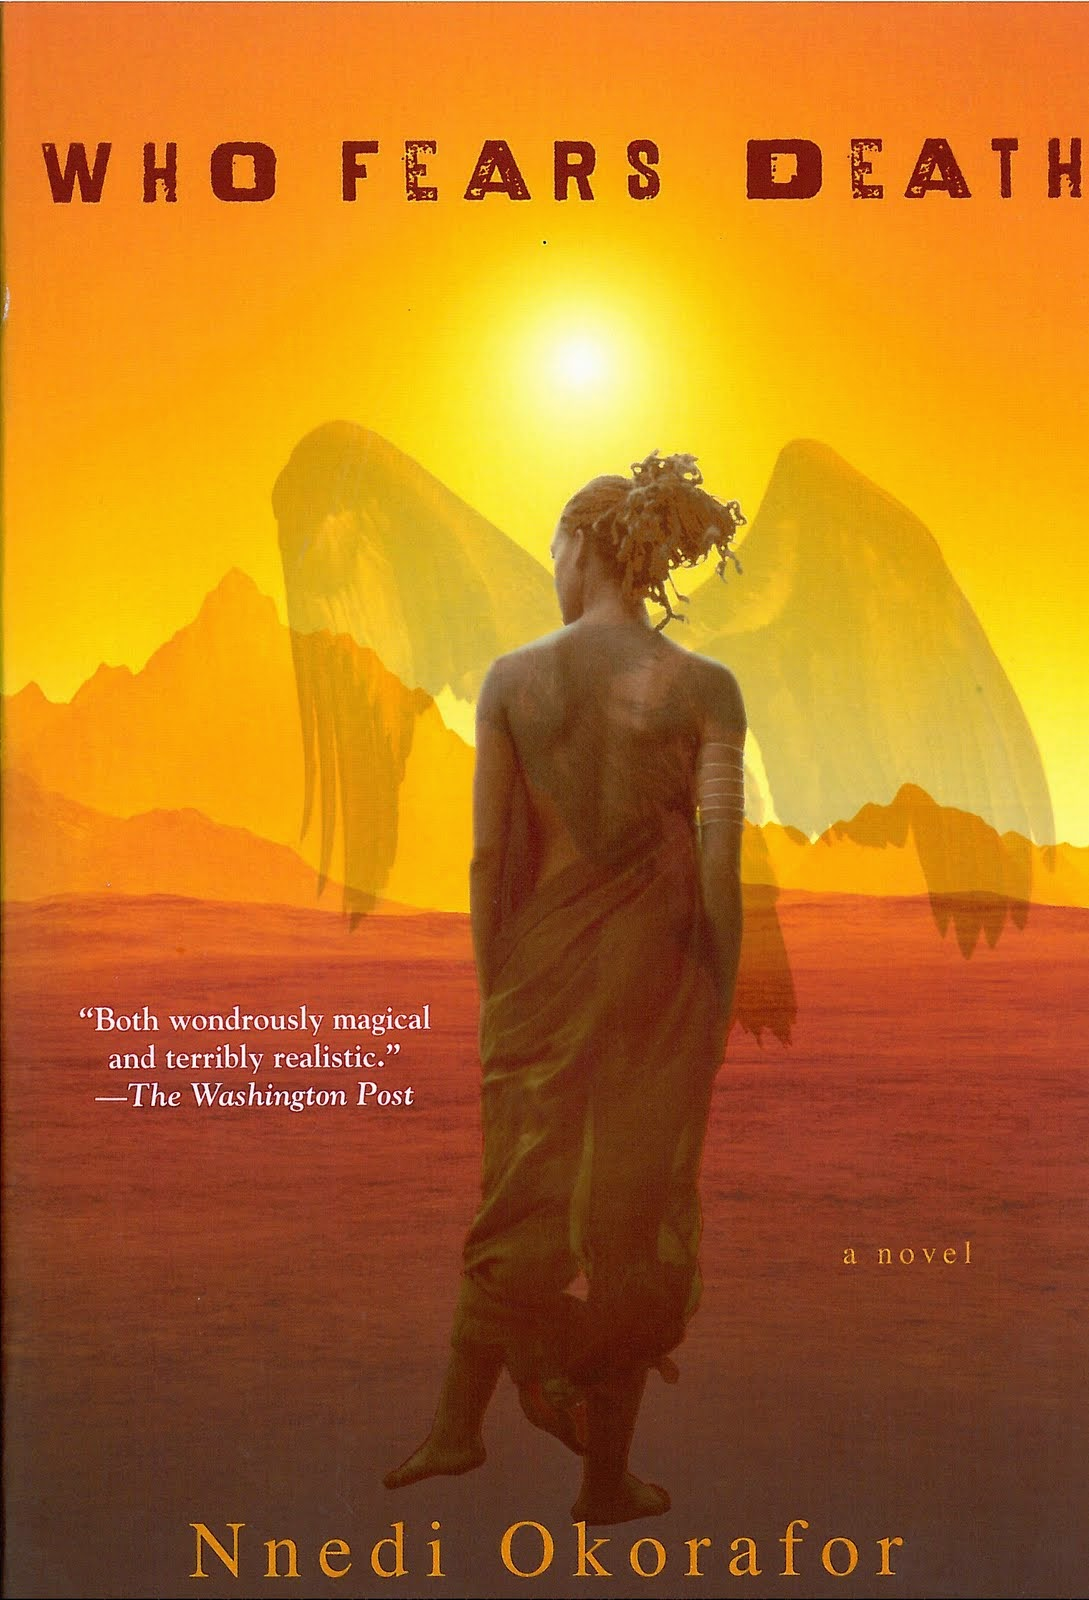 Nnedi's Wahala Zone Blog: A Reading Guide for the novel WHO